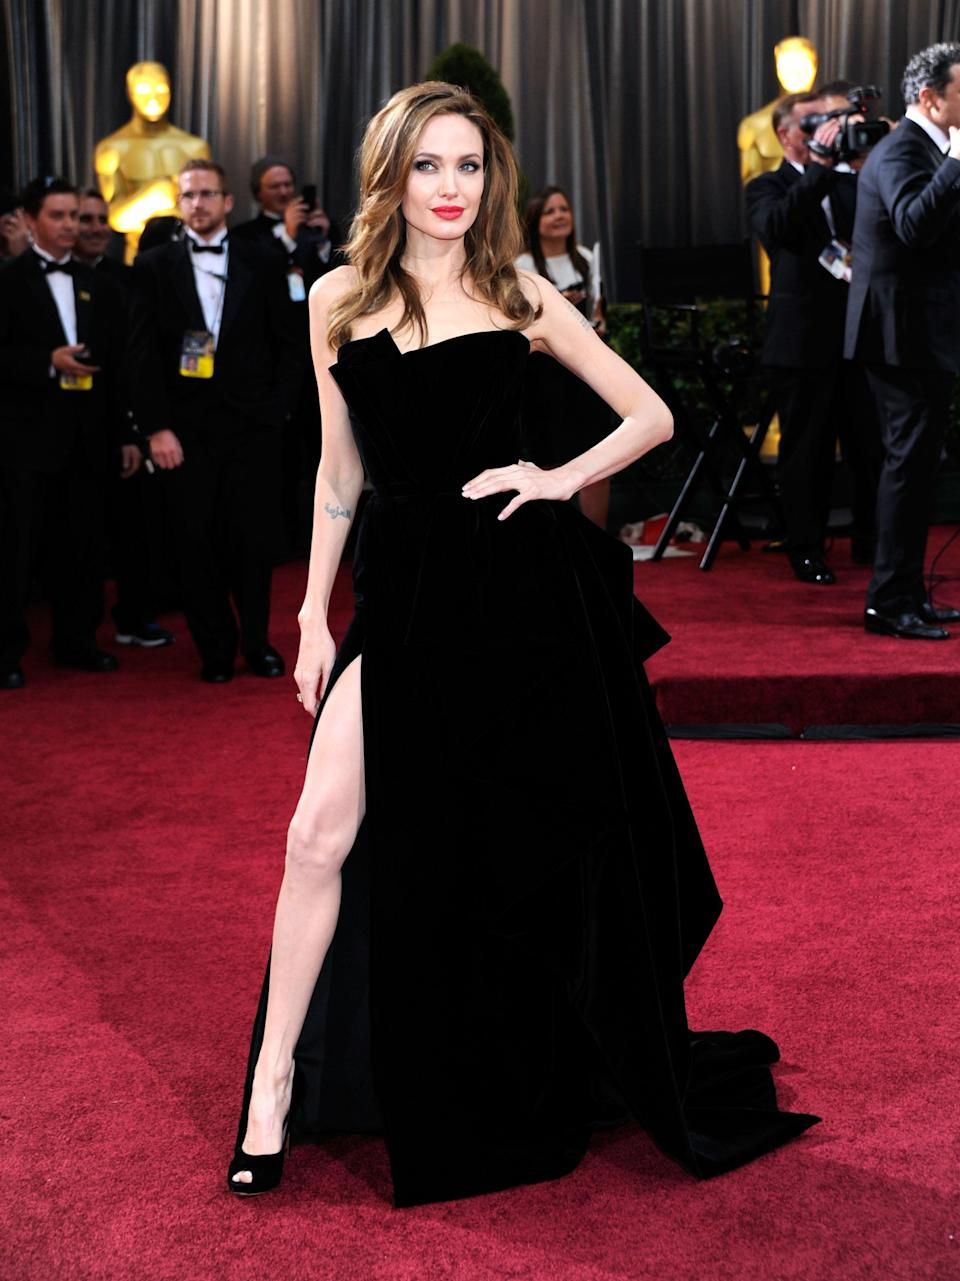 Angelina's tumbling, strapless Versace gown was a huge hit in 2012 – largely because the thigh-high split showcased the star's right leg. Angelina's 'leg-thrust' quickly went viral and even scored its own Twitter account.